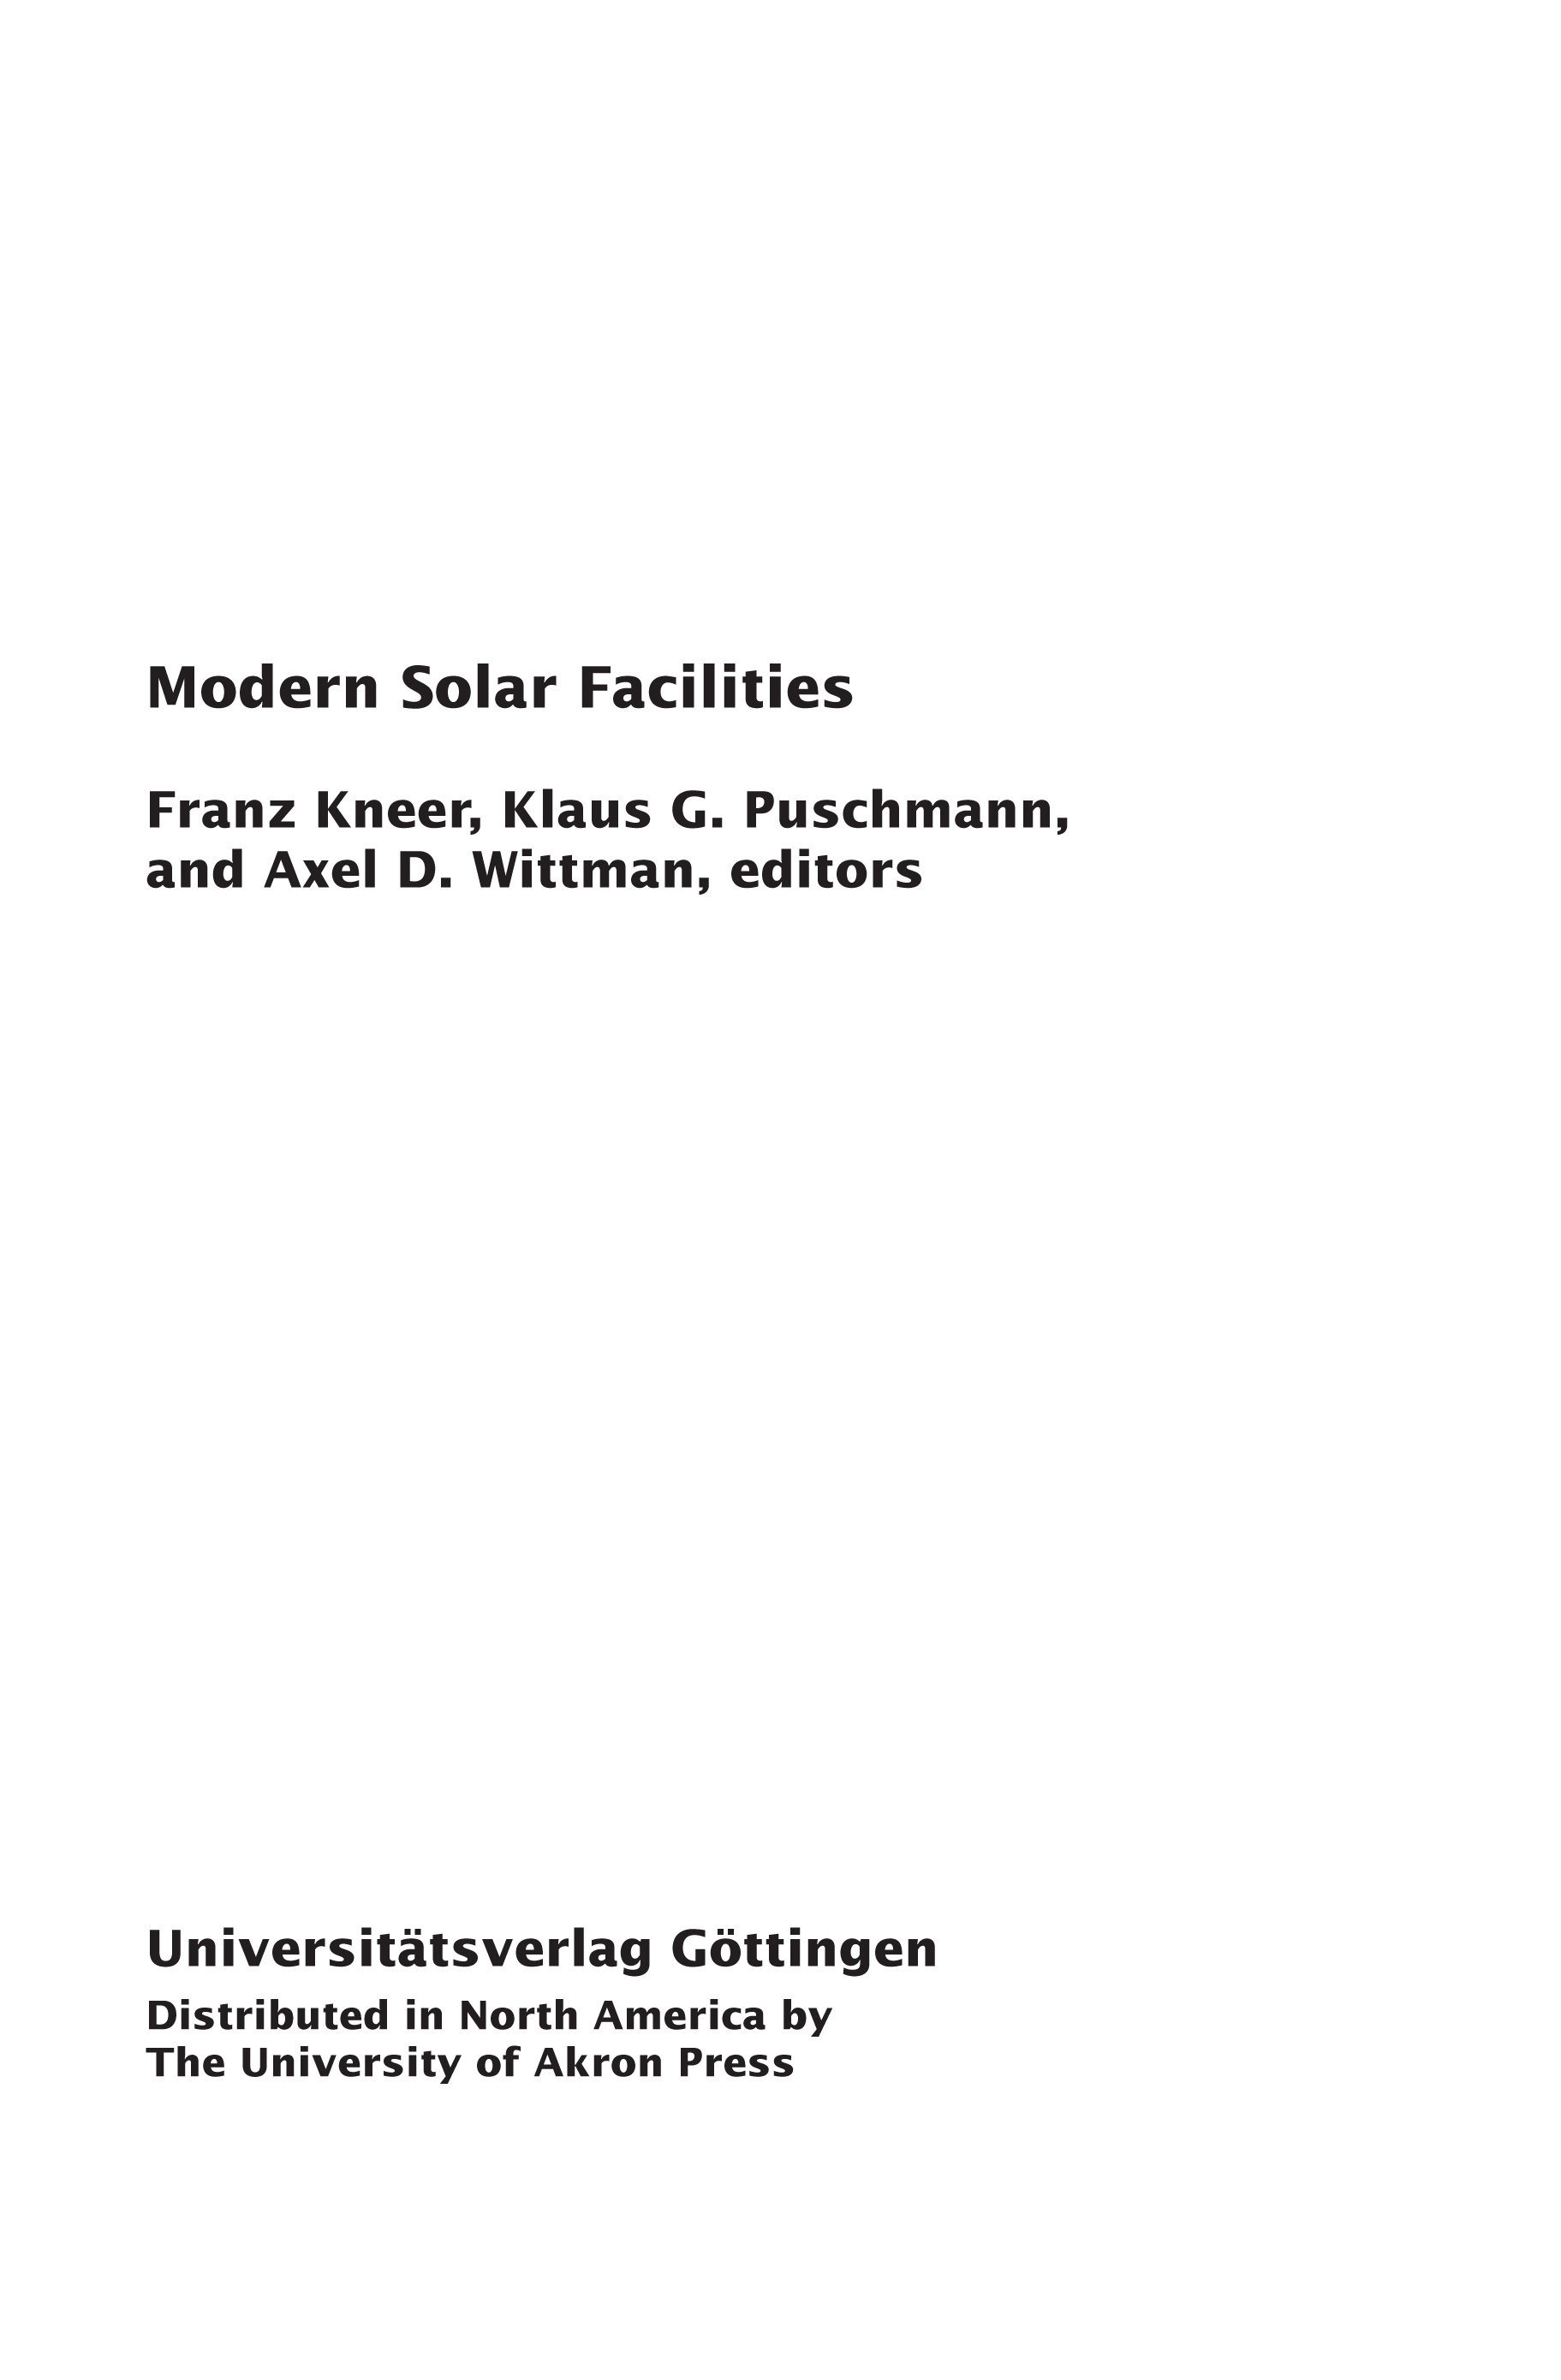 Modern Solar Facilities: Advanced Solar Science, Proceedings of a Workshop held at Göttingen, September 27-29, 2006